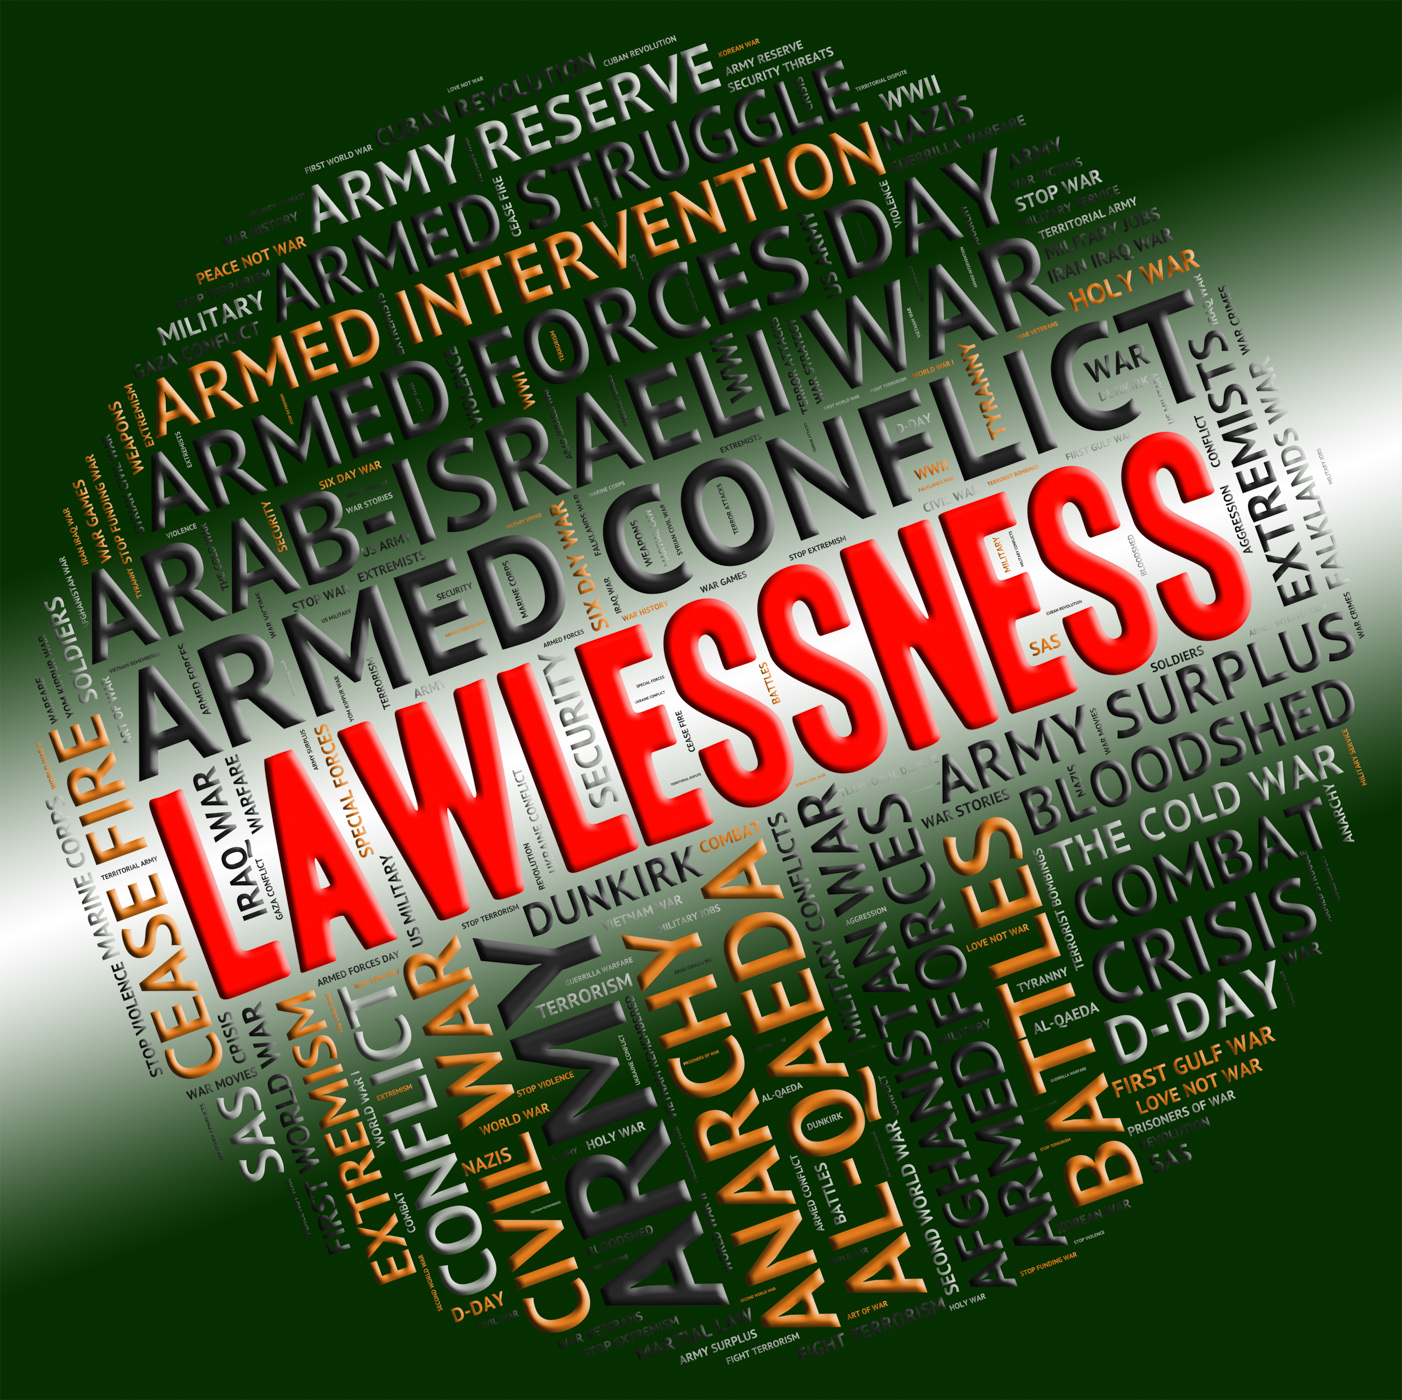 Lawlessness word shows insurrectionary wordcloud and wordclouds photo